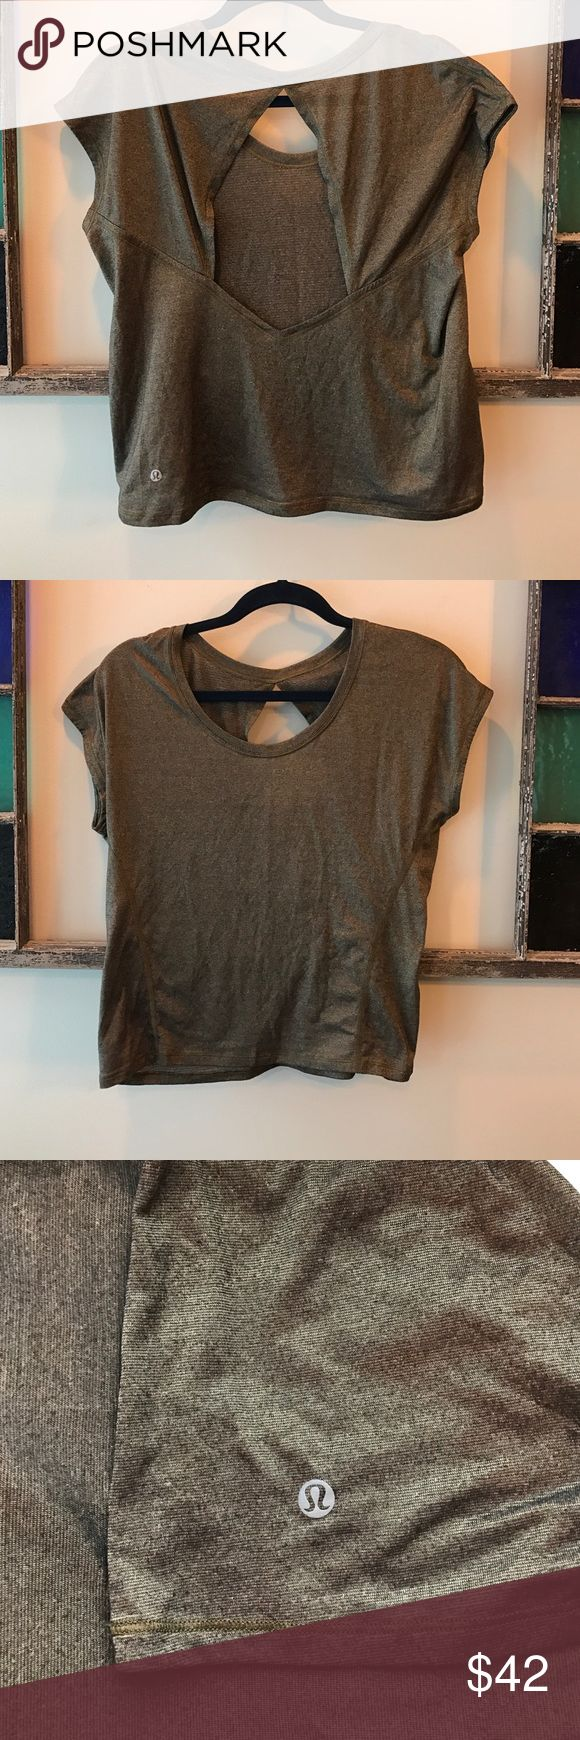 Lululemon shirt Gorgeous gold metallic lululemon open back shirt, perfect over a cute strappy lulu bra, super light weight and comfy, could just as easily wear to the gym as out for the night lululemon athletica Tops